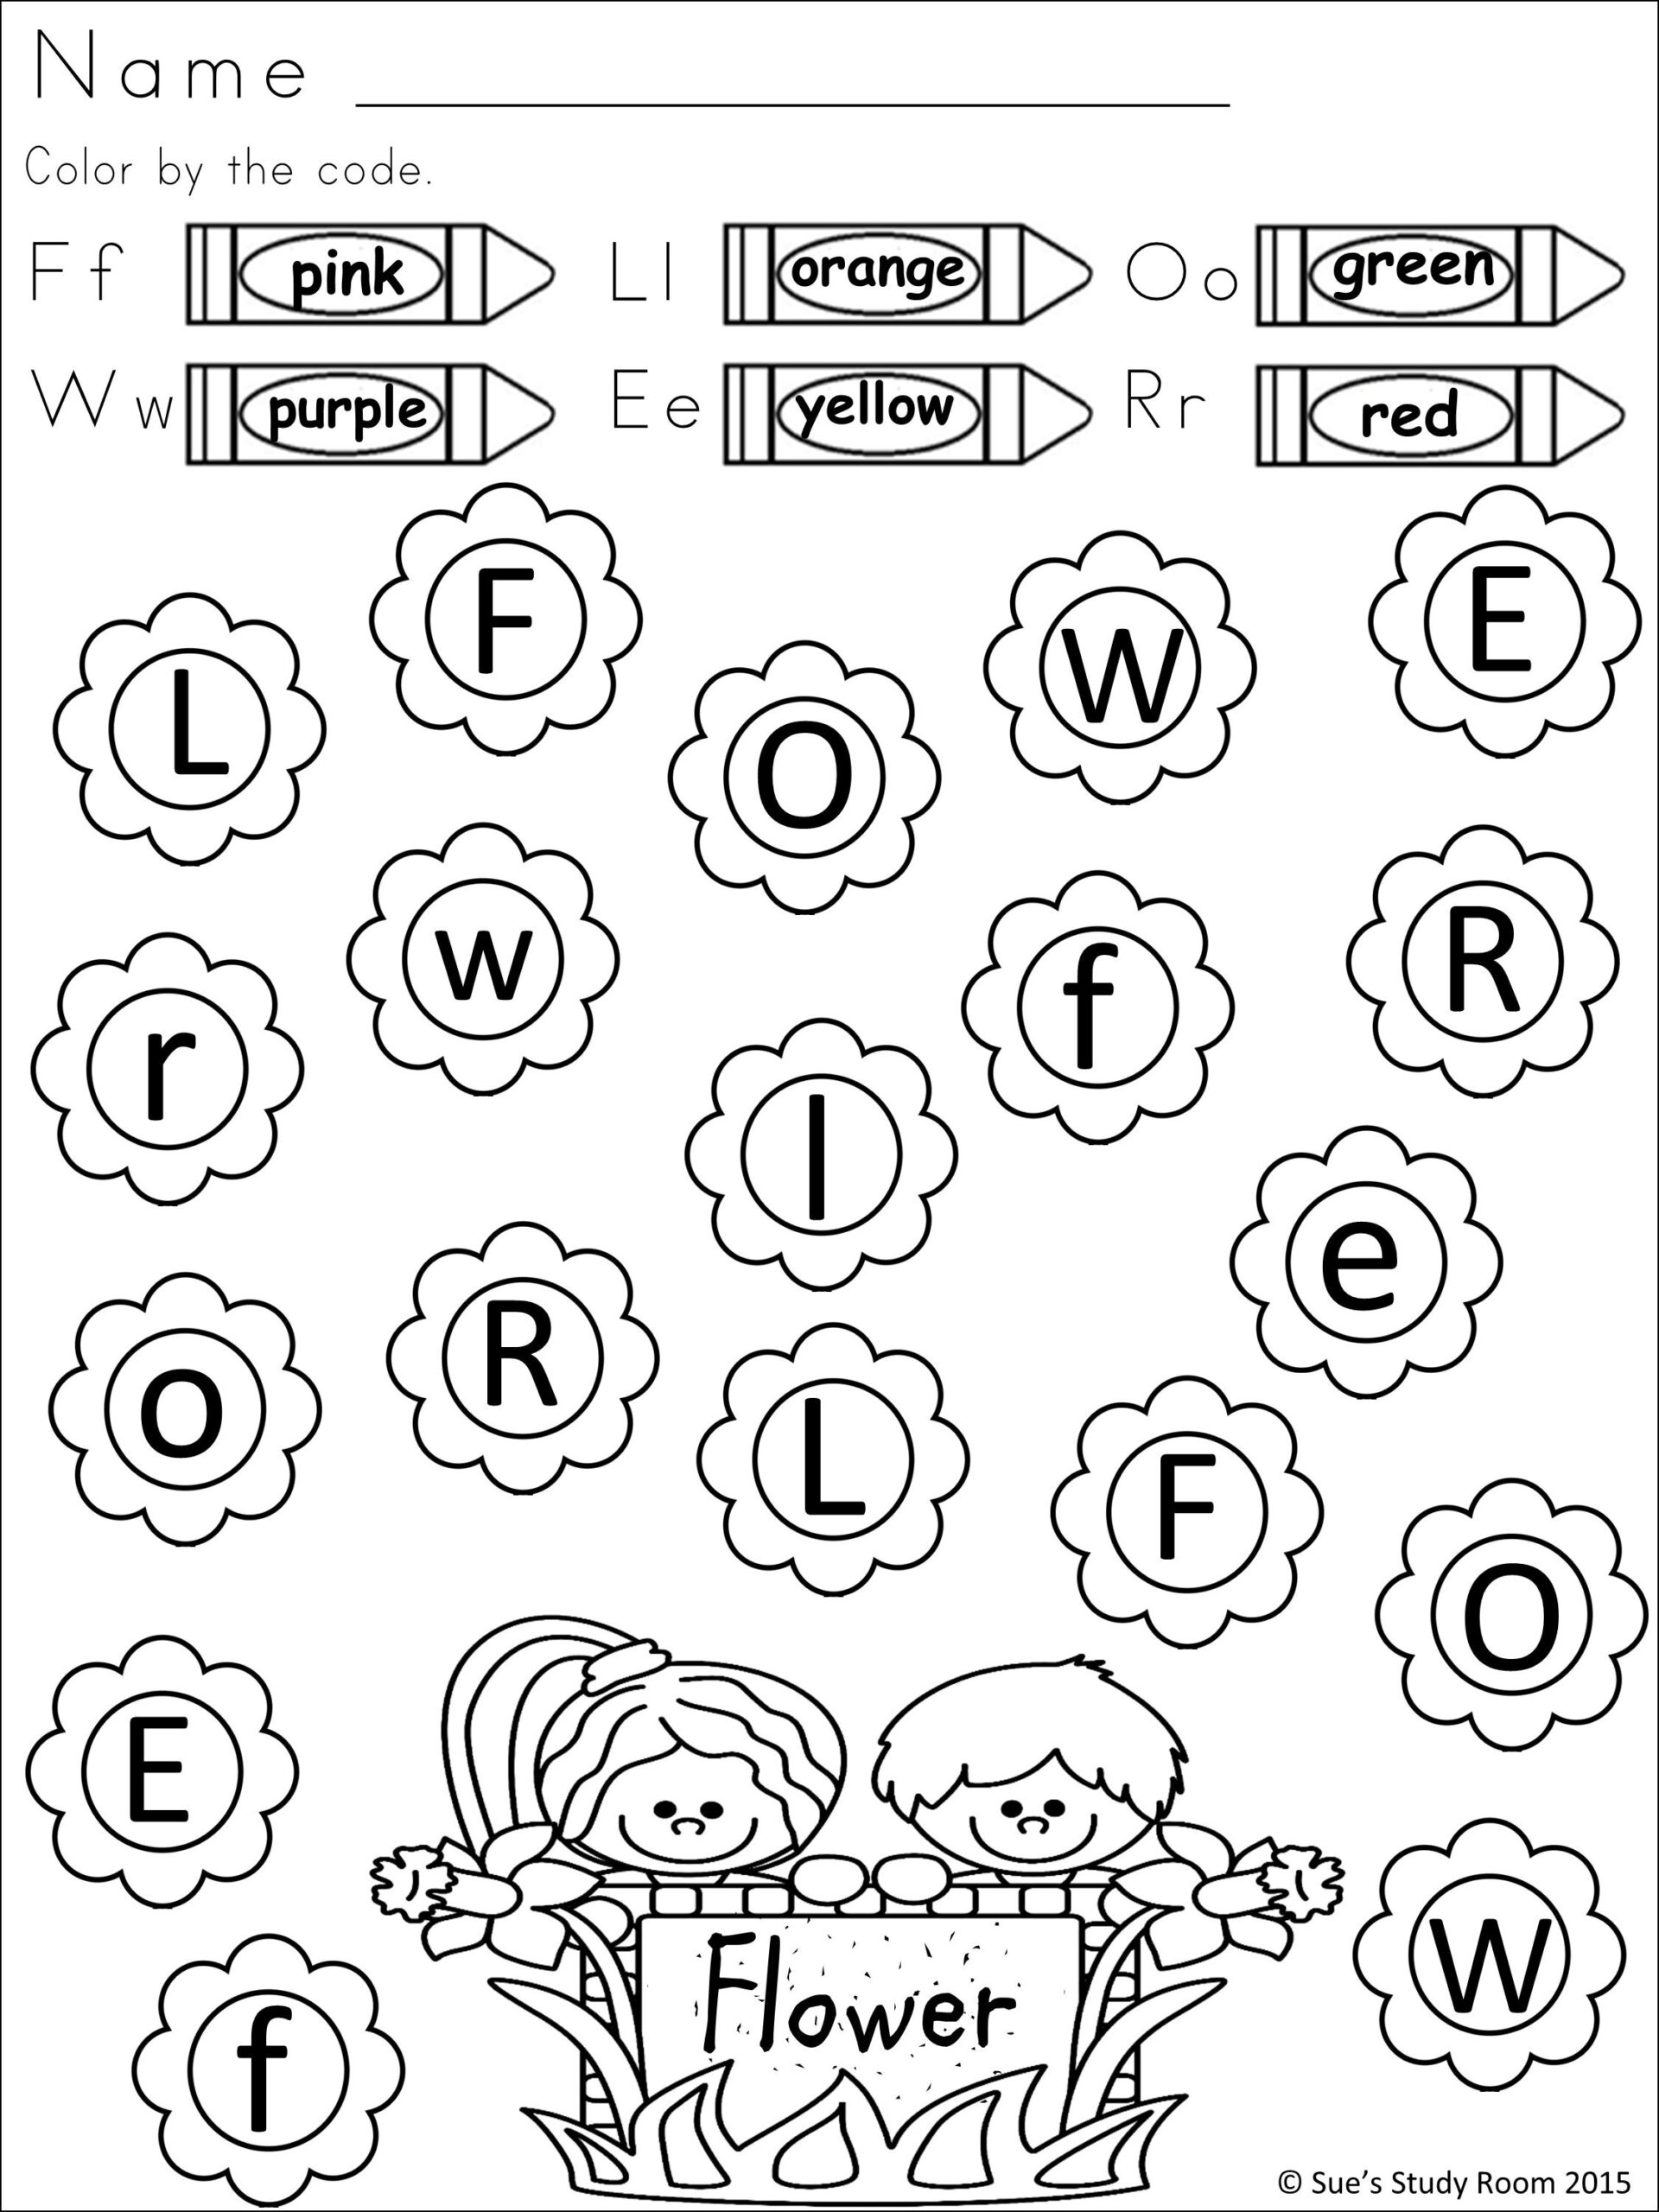 Preschool Letter Recognition Worksheets Worksheet Fun Facts pertaining to Alphabet Recognition Worksheets Printable